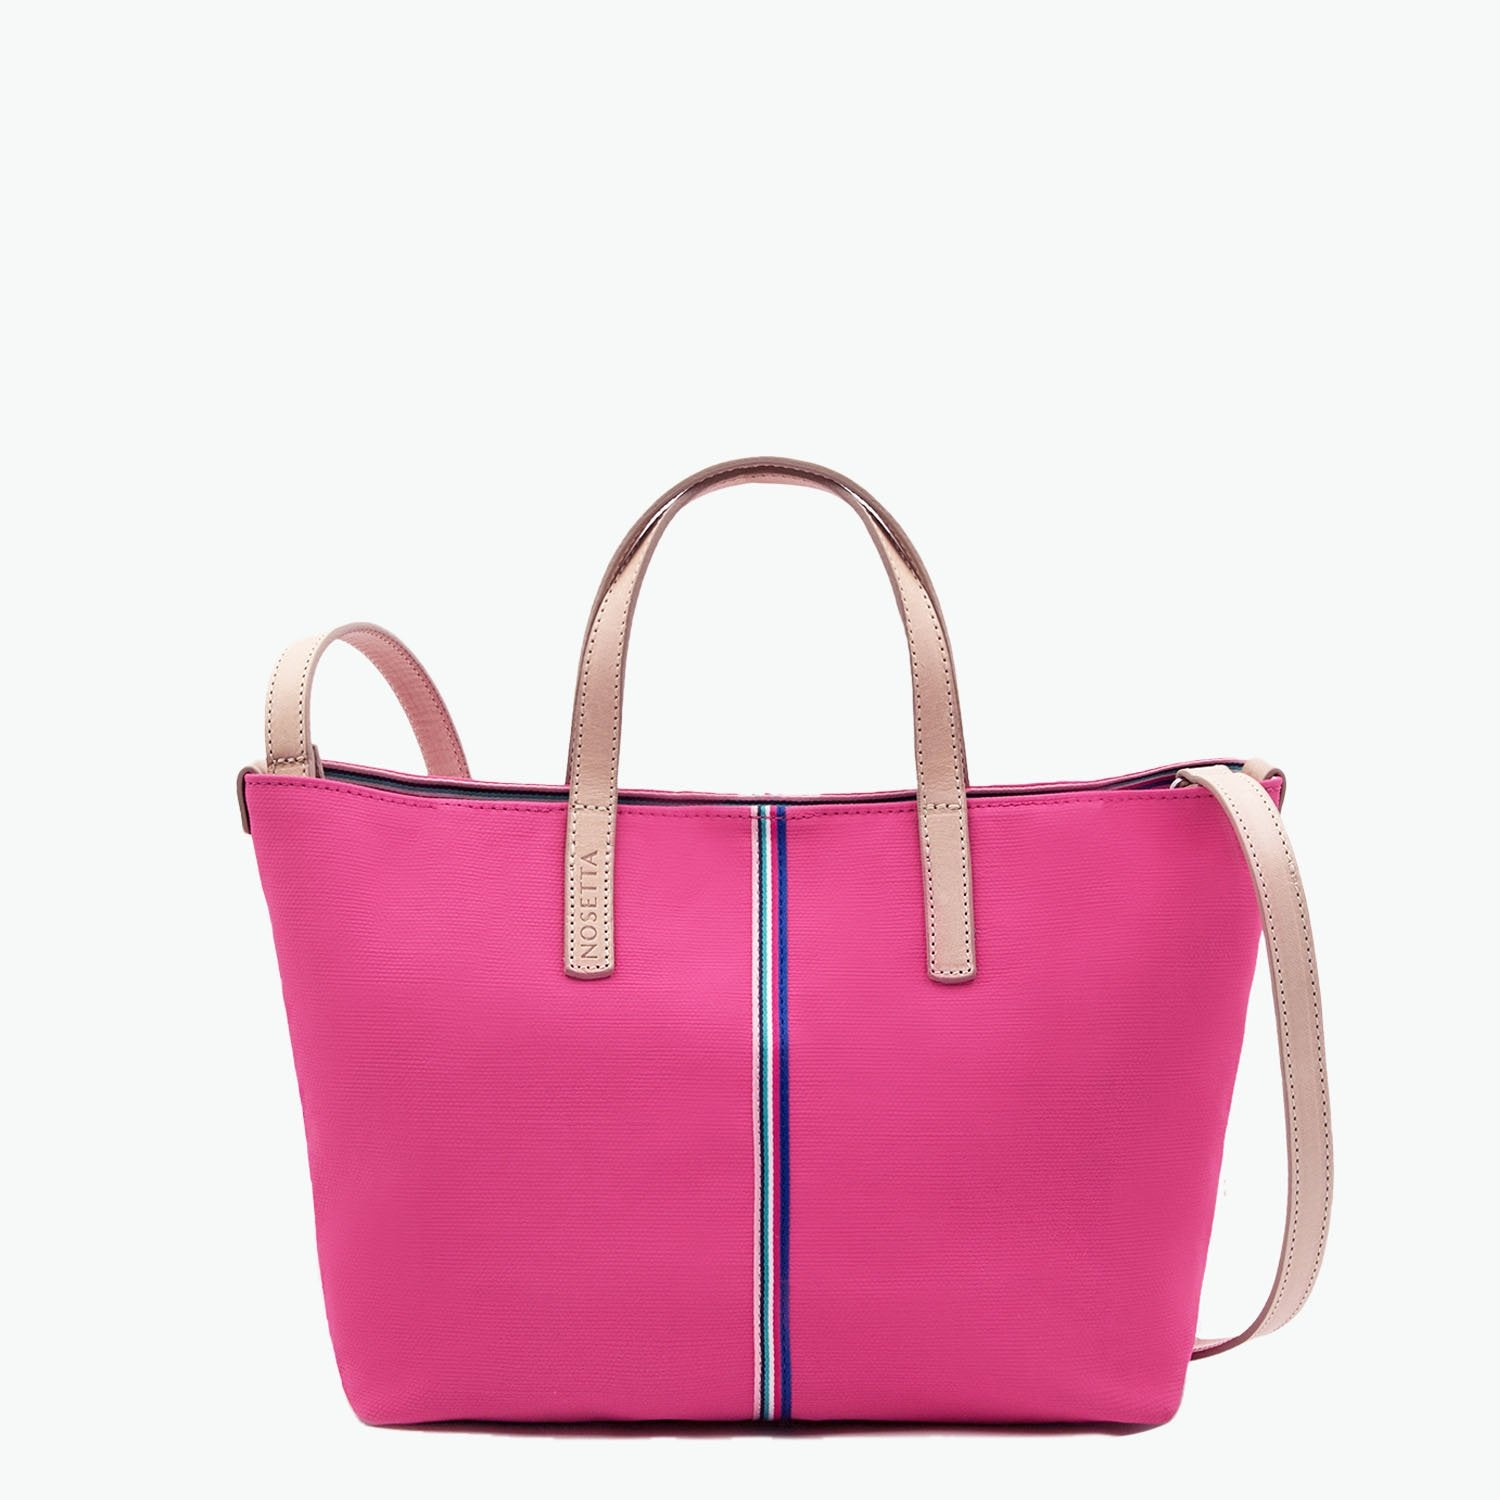 Carlia Small Tote Canvas and Leather